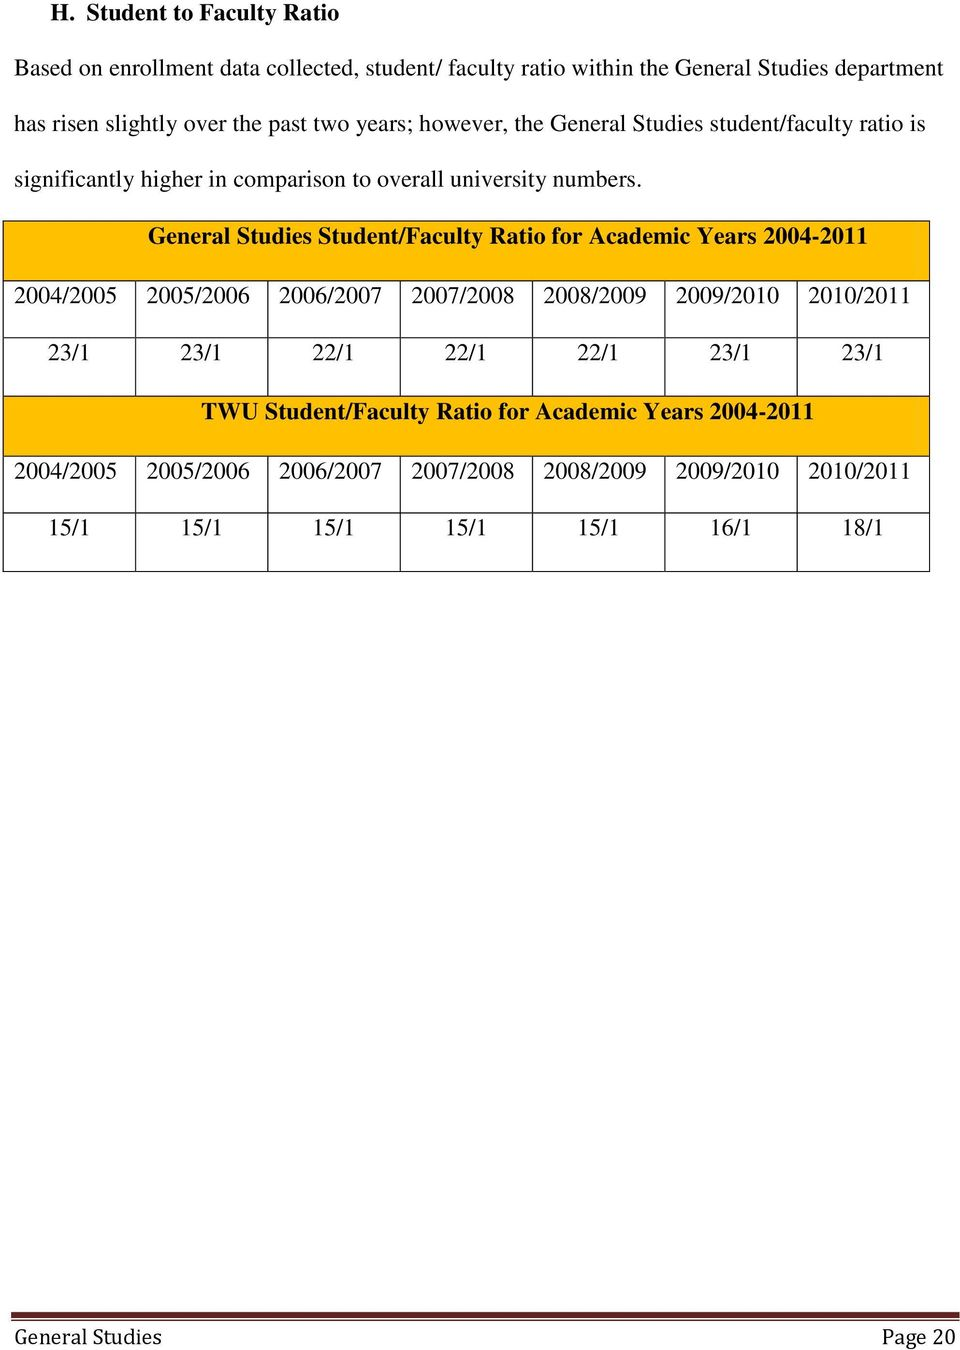 General Studies Student/Faculty Ratio for Academic Years 2004-2011 2004/2005 2005/2006 2006/2007 2007/2008 2008/2009 2009/2010 2010/2011 23/1 23/1 22/1 22/1